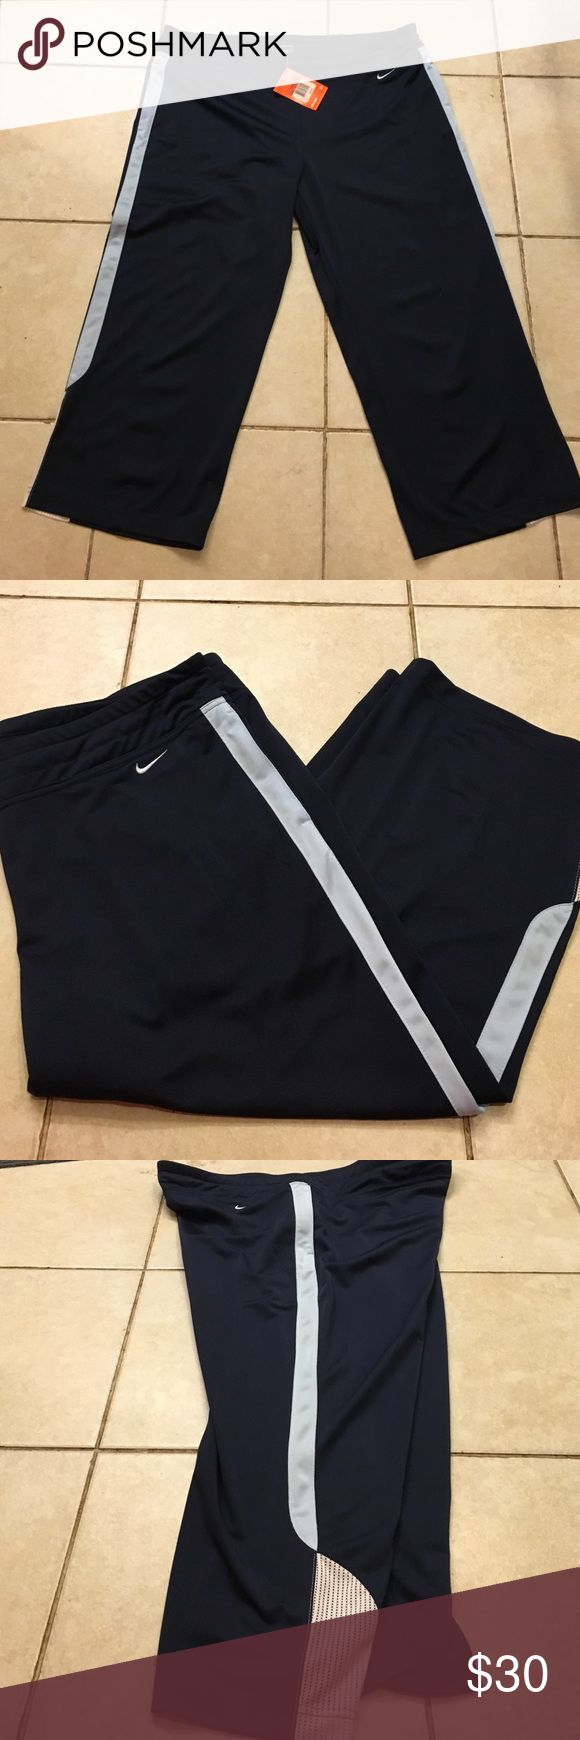 Ladies Workout Pants Nike dark blue with light blue side strip and white bottom 12 / 14 Nike Pants Track Pants & Joggers